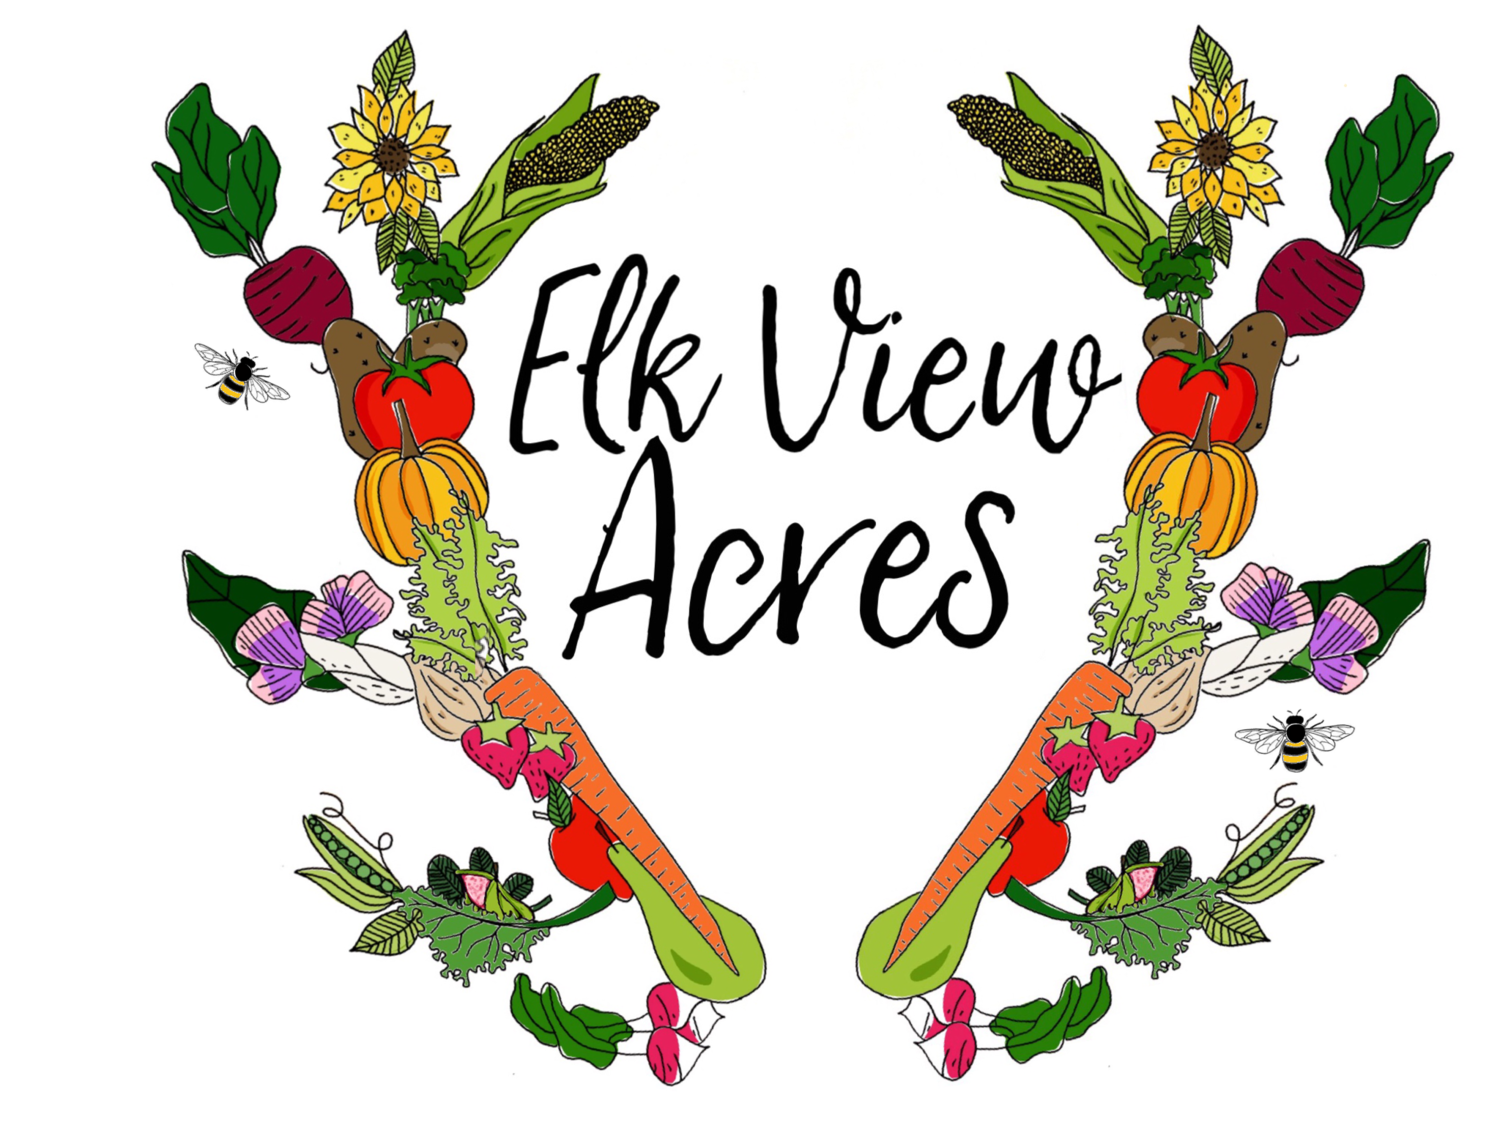 Elk View Acres